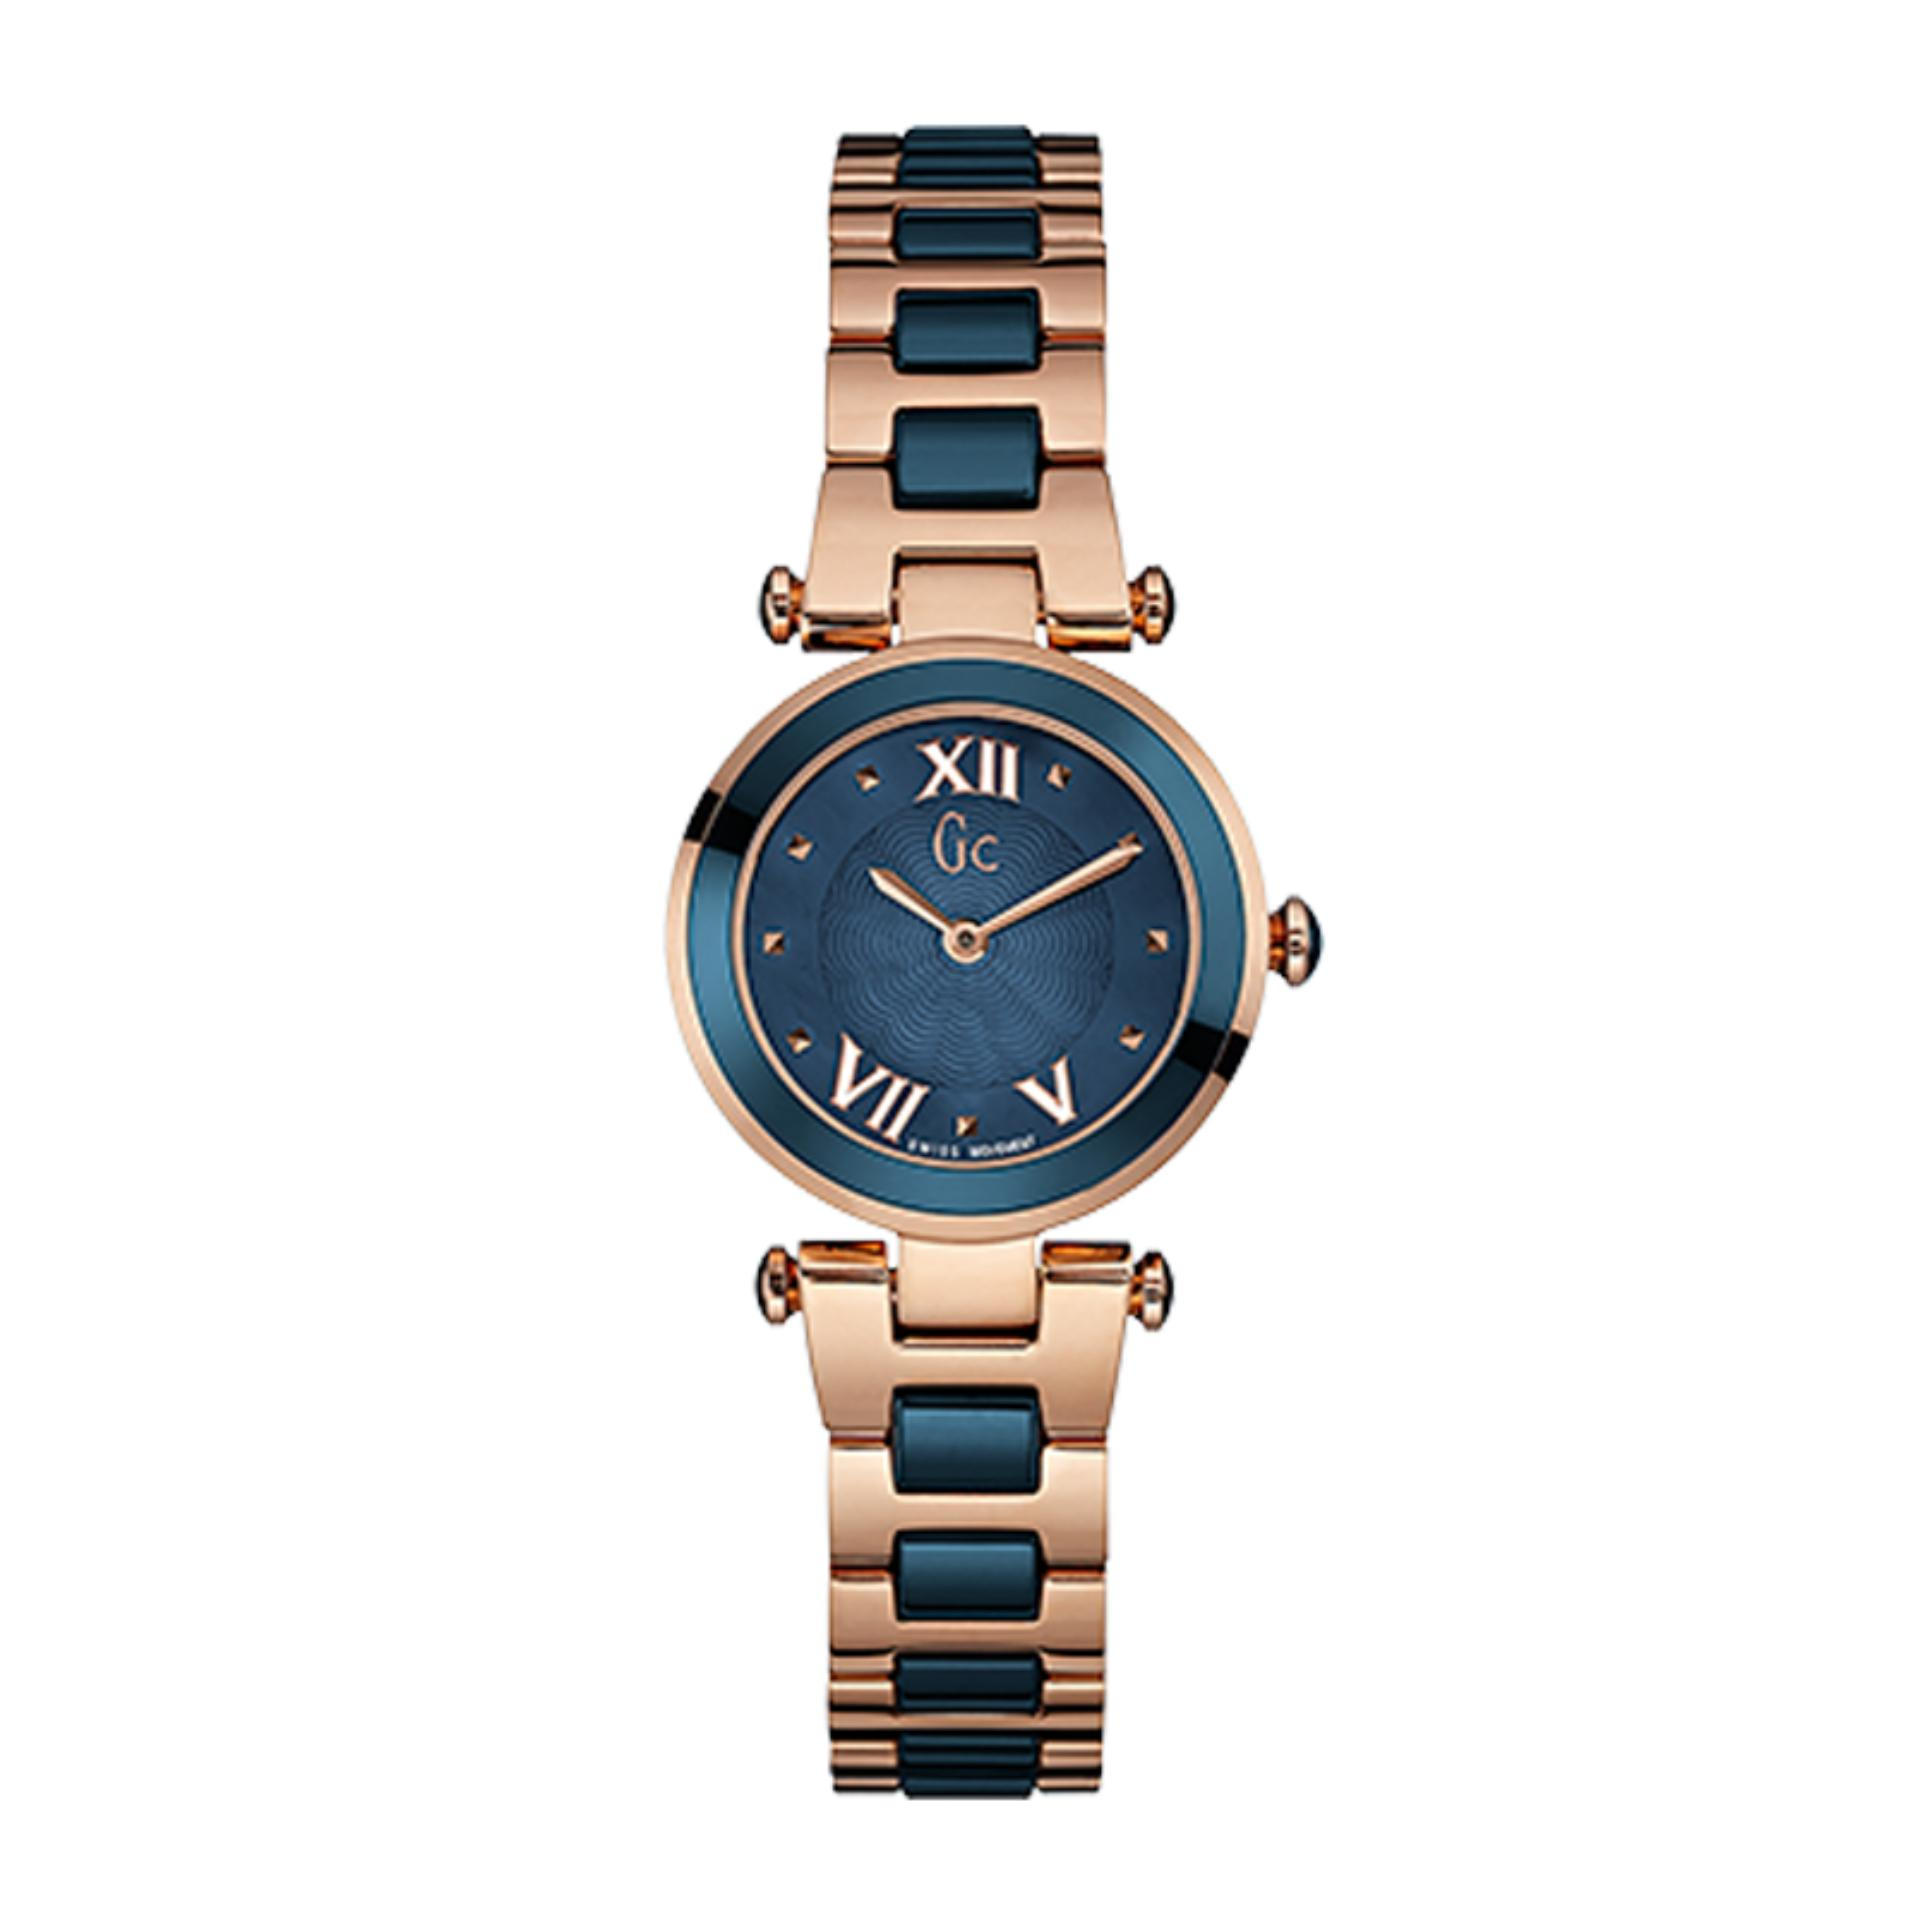 ... Guess Collection - Jam Tangan Wanita - Rosegold Komb Biru - Stainless Steel - Y07010L7 ...